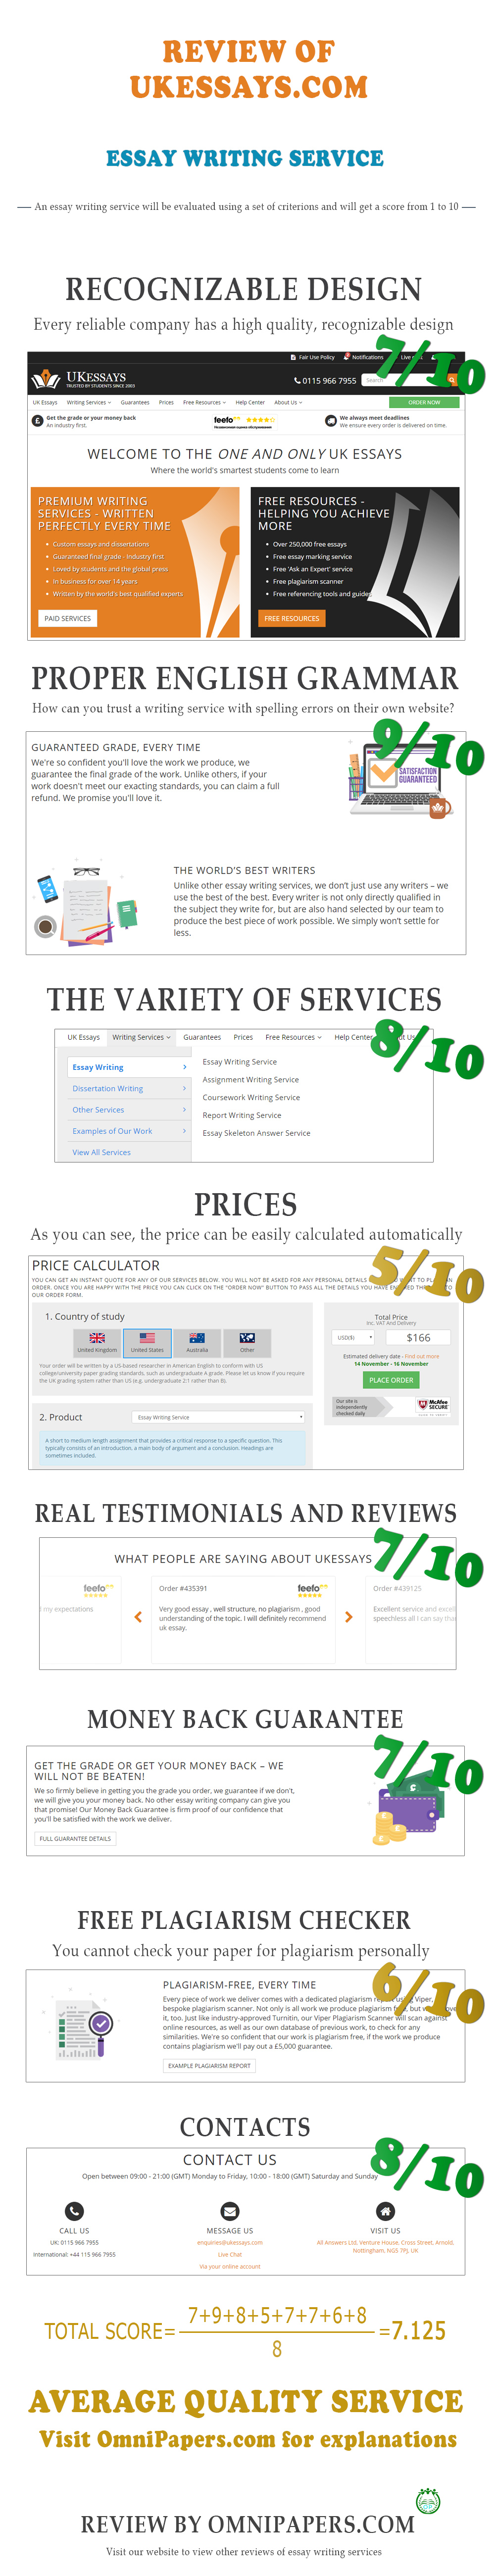 ukessays com review score 7 125 10 com infographic review of ukessays